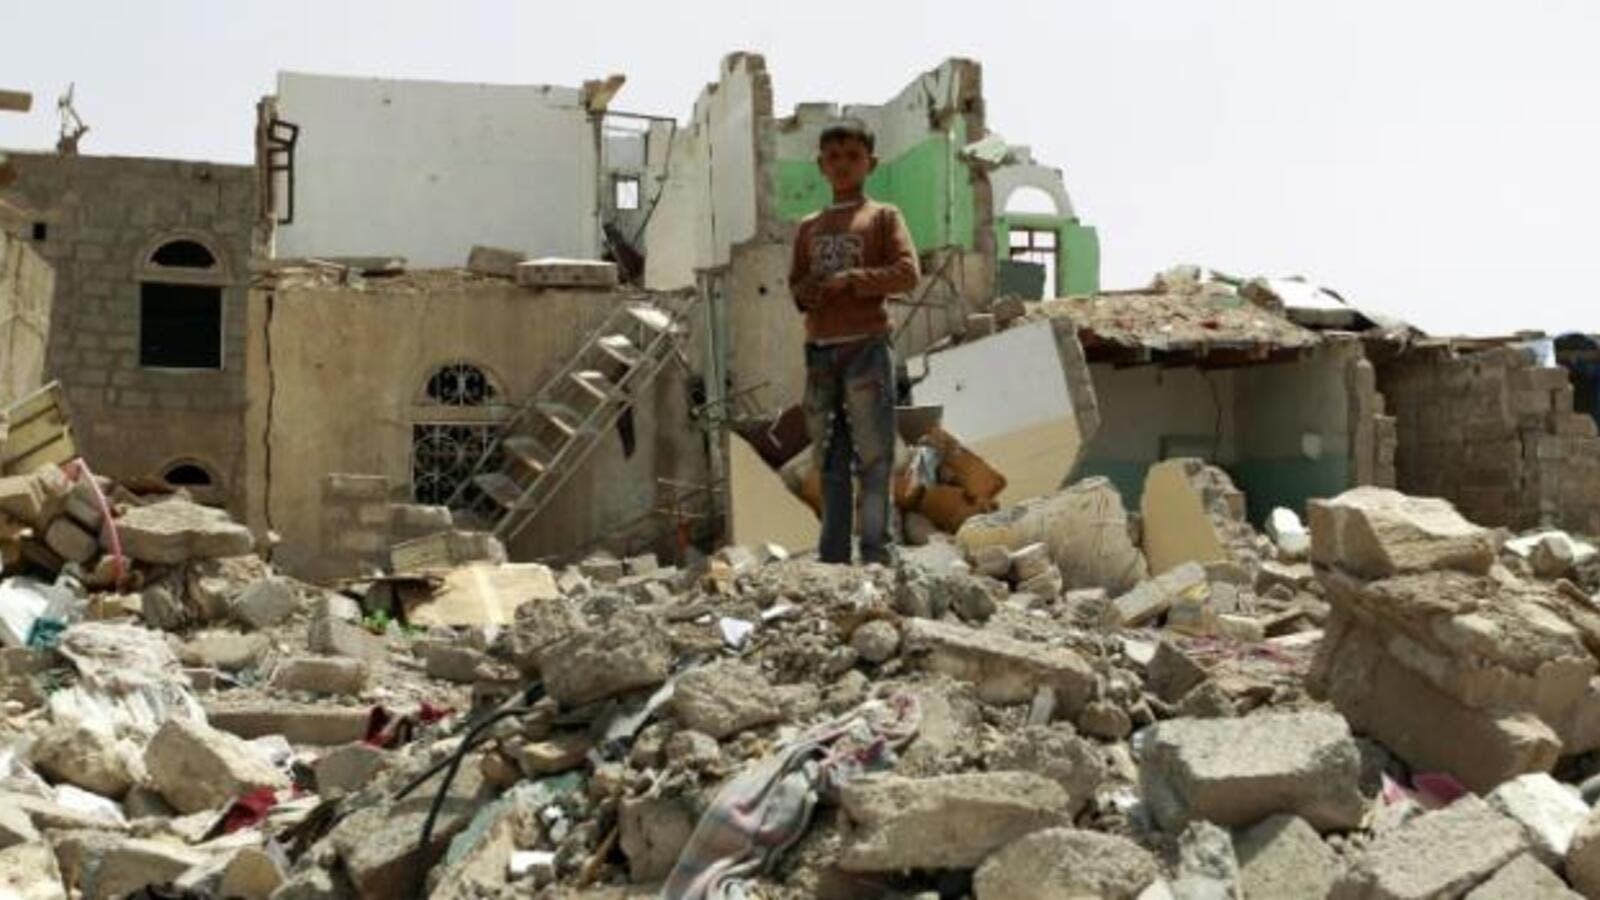 A child walks through the rubble after an airstrike in Taiz, Yemen. (AFP/File)